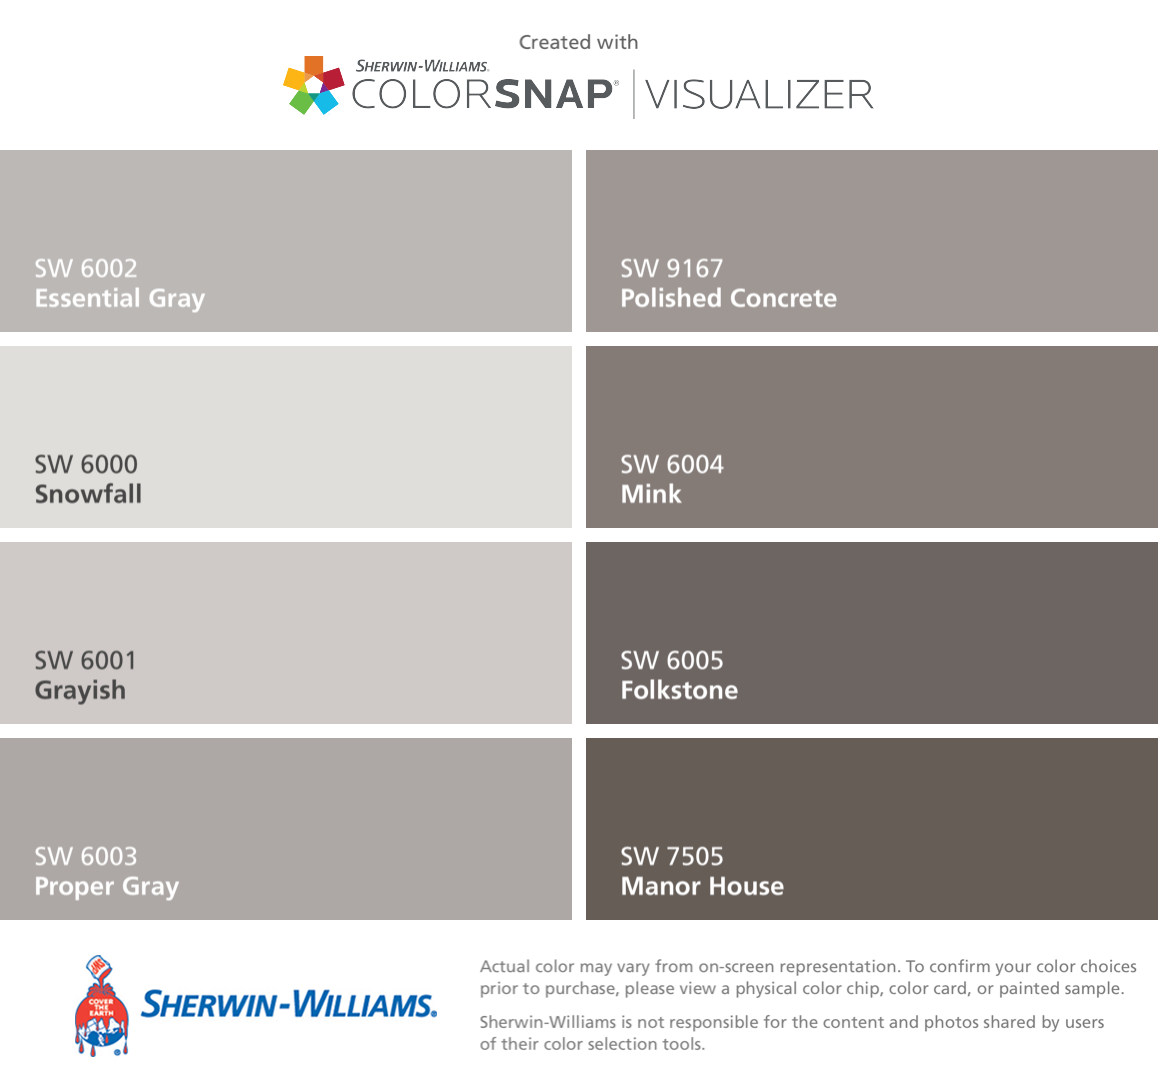 Sherwin Williams Mink Bathroom: I Found These Colors With ColorSnap® Visualizer For IPhone By Sherwin-Williams: Essential Gray